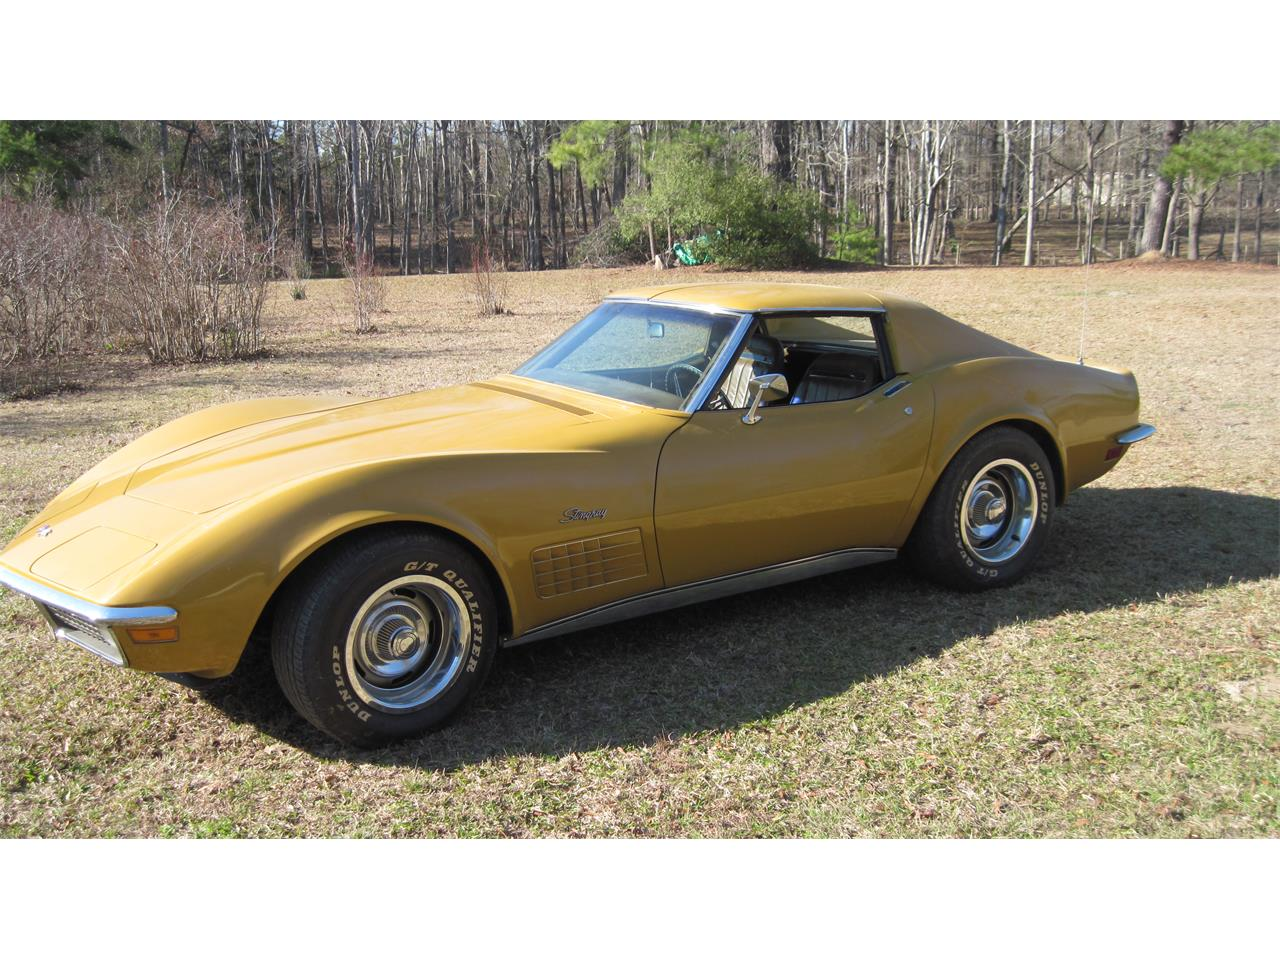 Large Picture of '71 Chevrolet Corvette located in Summerville South Carolina - $21,500.00 - KBYB